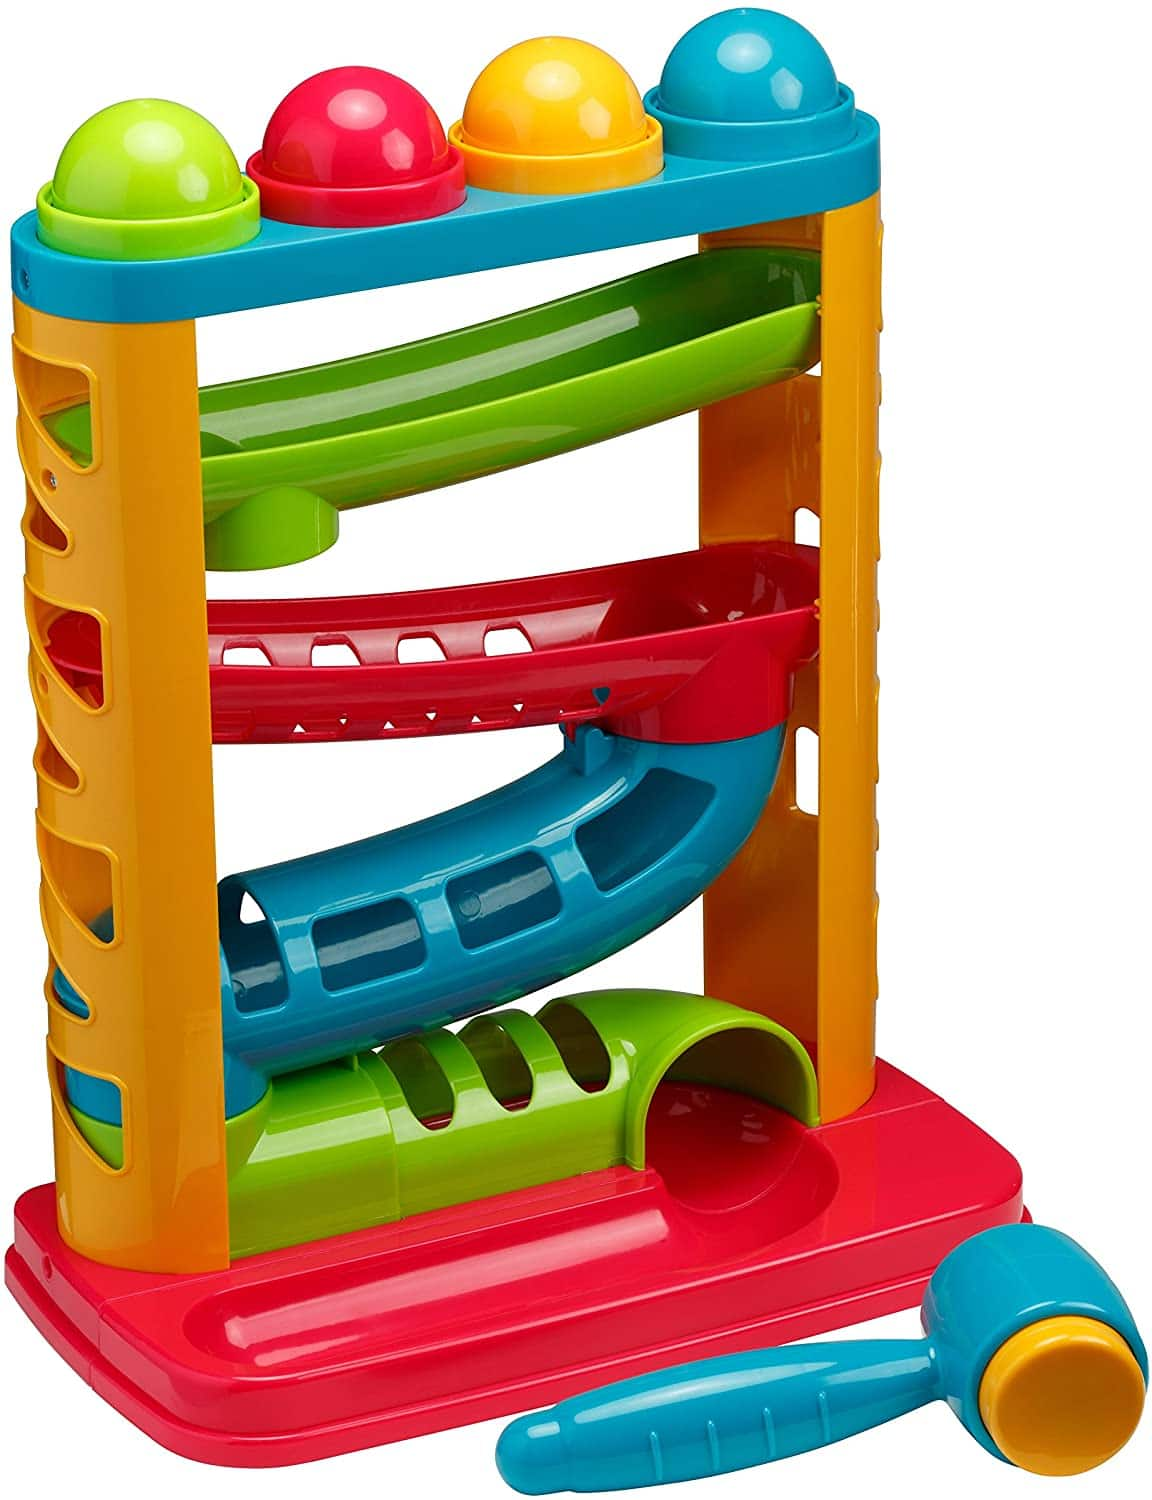 Playkidz: Super Durable Pound A Ball Game for Toddlers